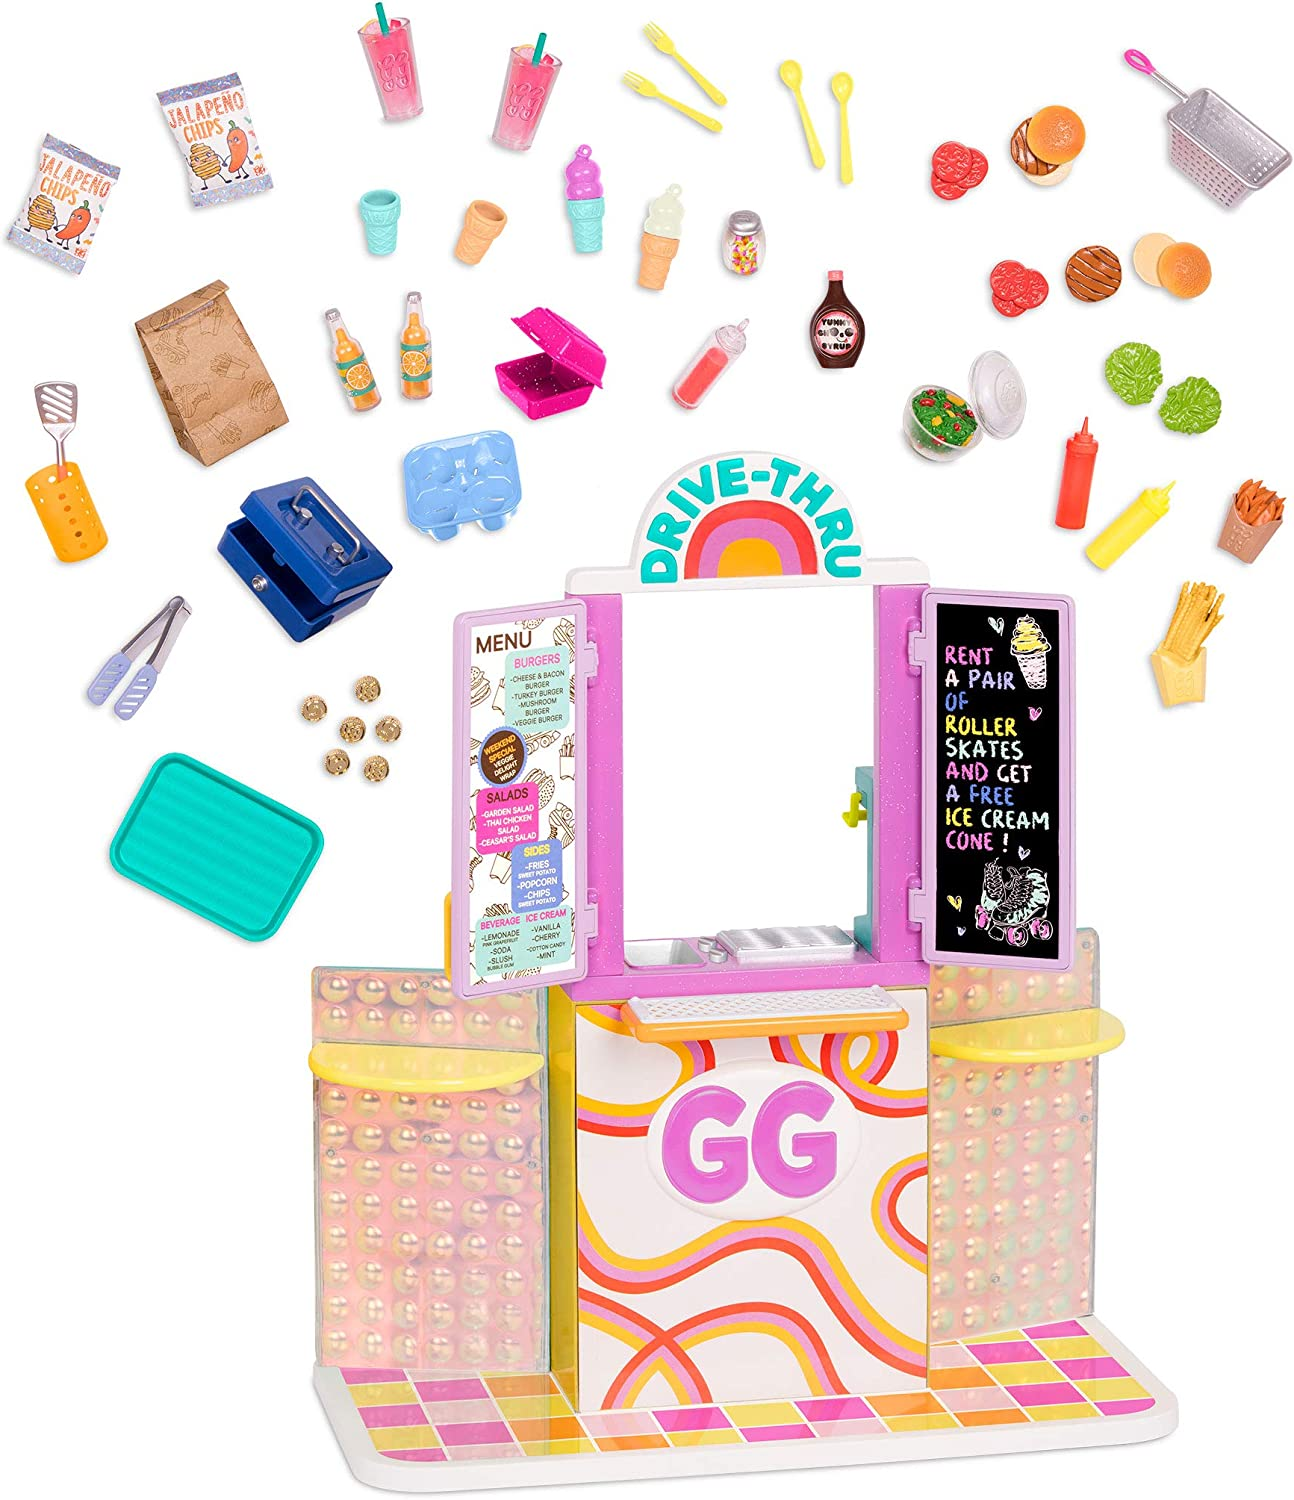 Glitter Girls Dolls by Battat – GG Drive-Thru Window Set – Deluxe Play Food & Pretend Restaurant Playset for 14-inch Dolls – Toys, Clothes, and Accessories for Kids Ages 3 and Up